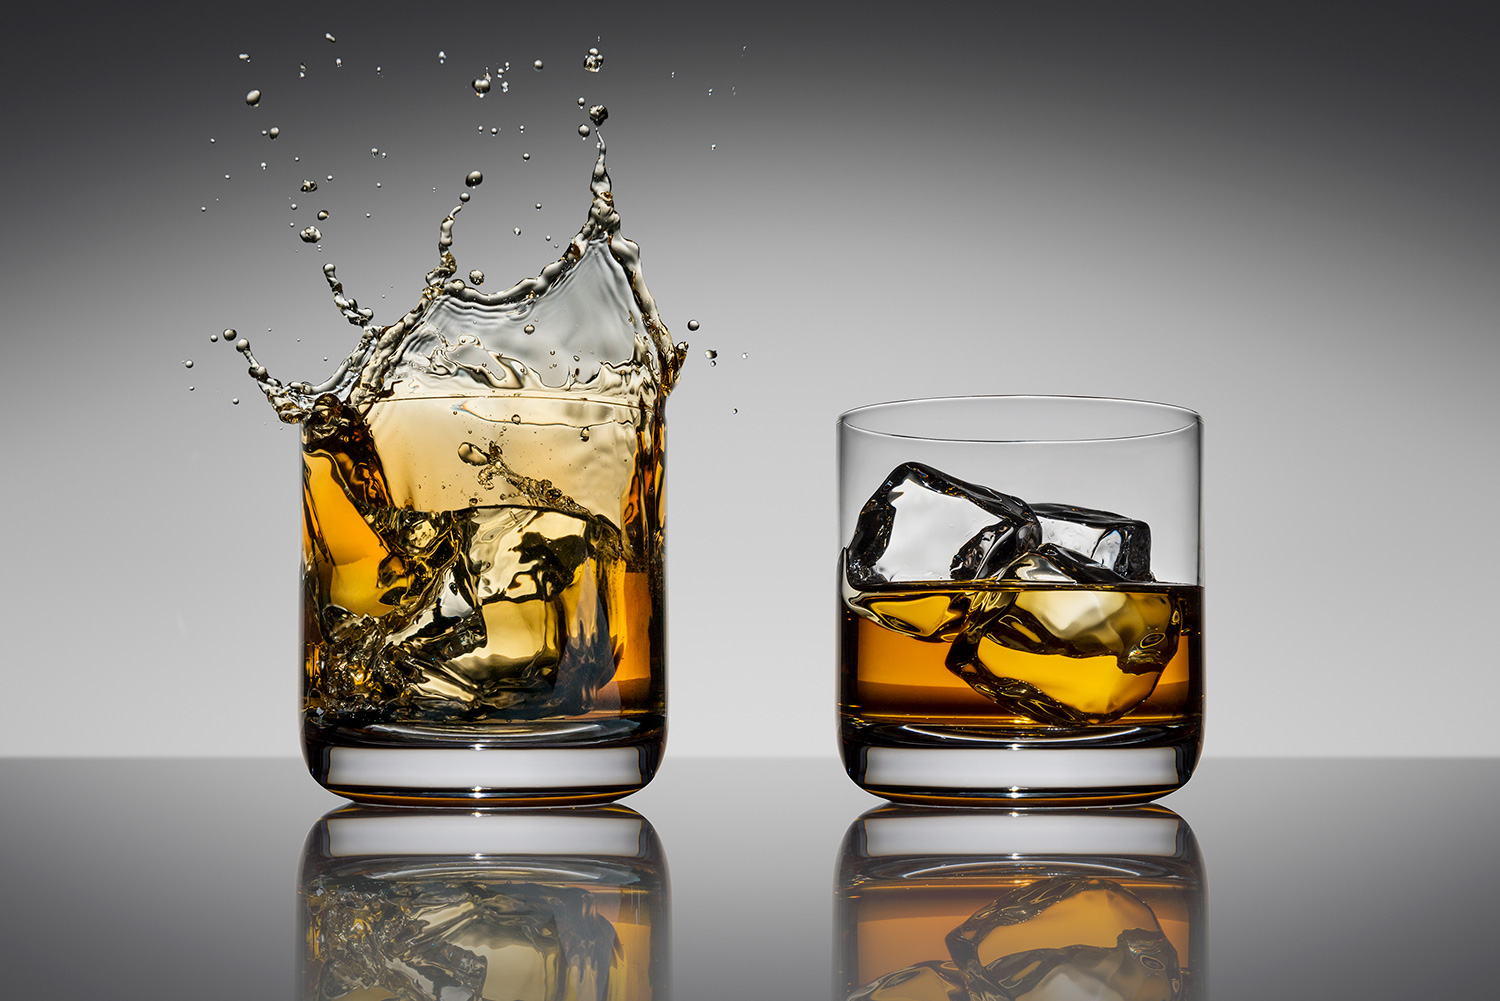 tom-medvedich-still-life-beverages-whiskey-glasses-splash-web-new.jpg